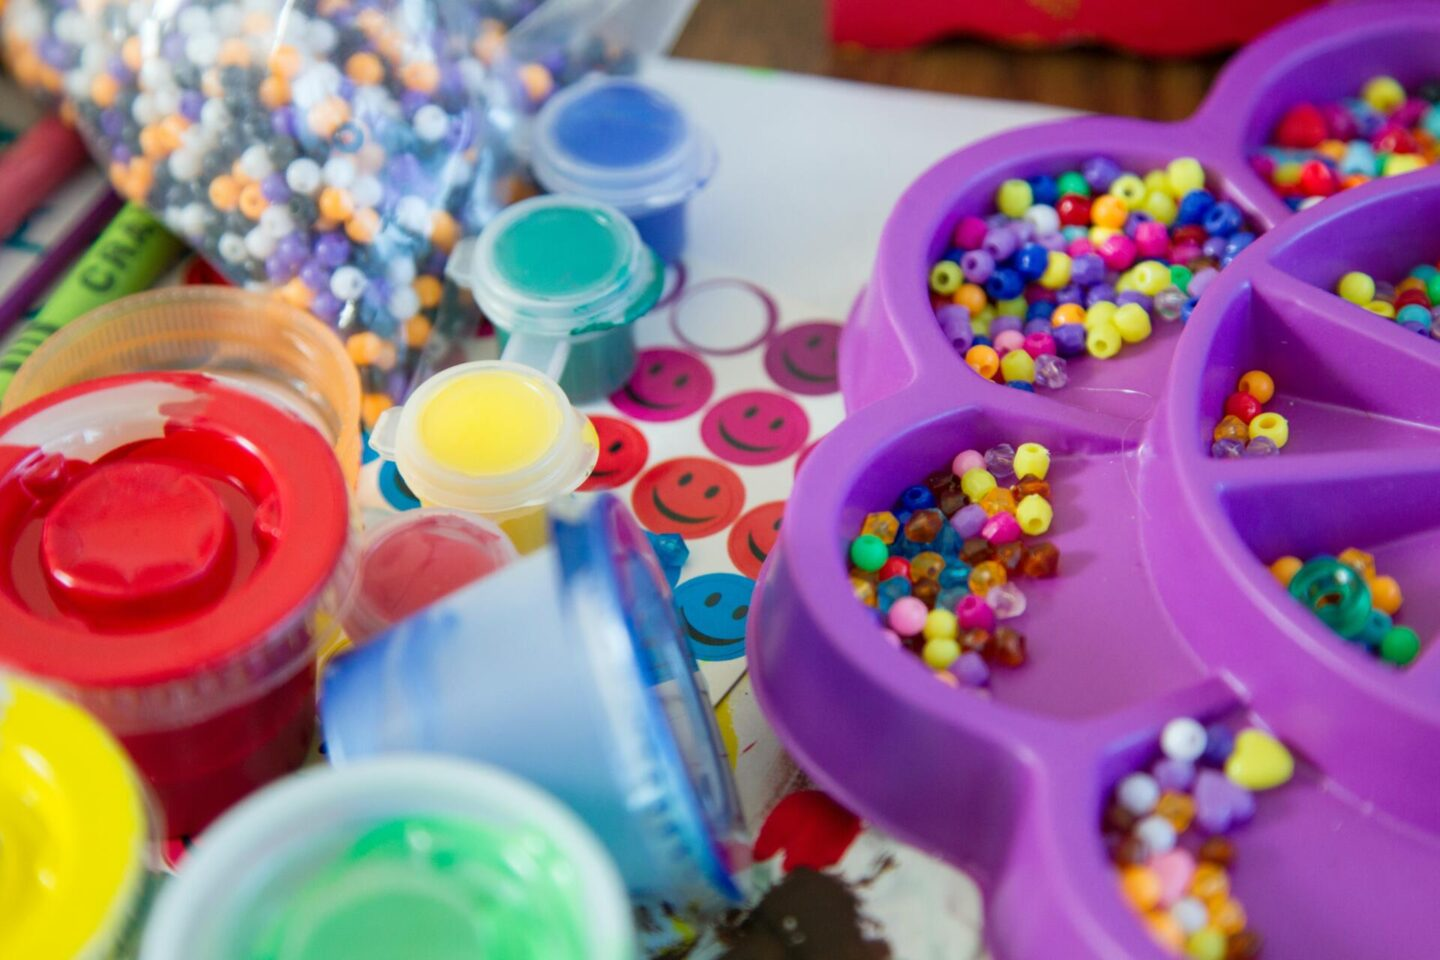 Fun craft ideas that toddlers will love